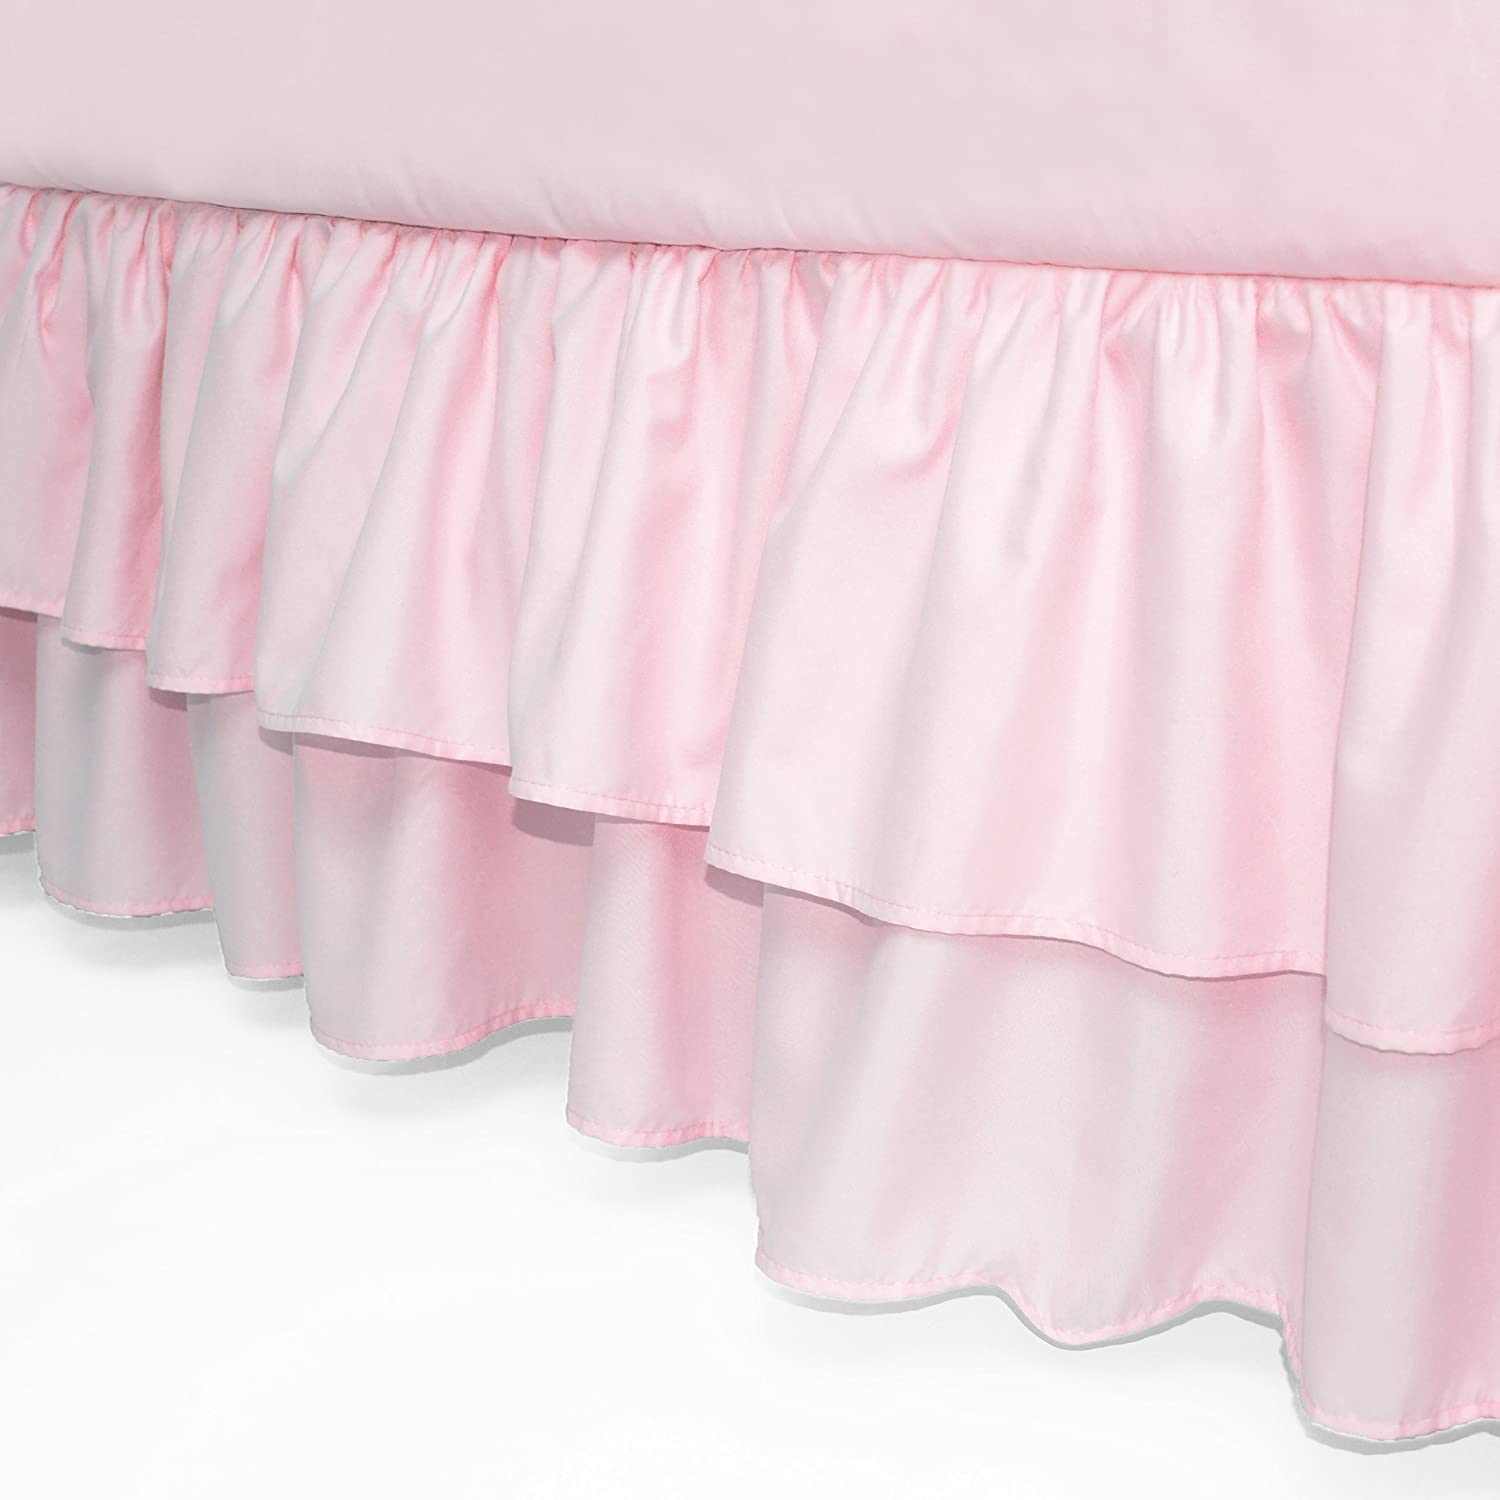 American Baby Company Double Layer Ruffled Crib Skirt, Blush Pink, for Girls